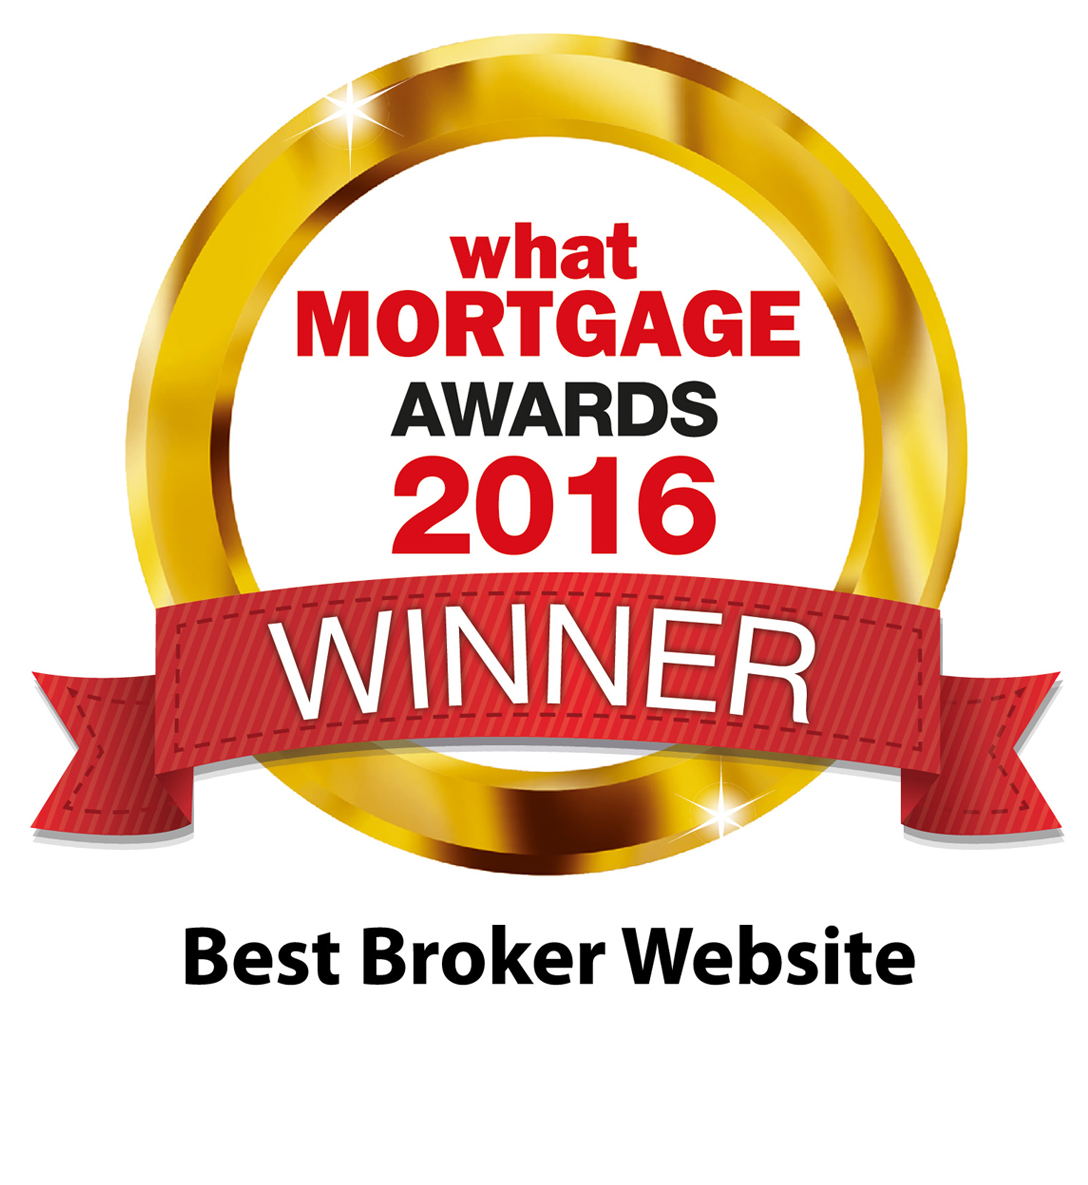 Best Broker Website 2016 - Mortgages for Business